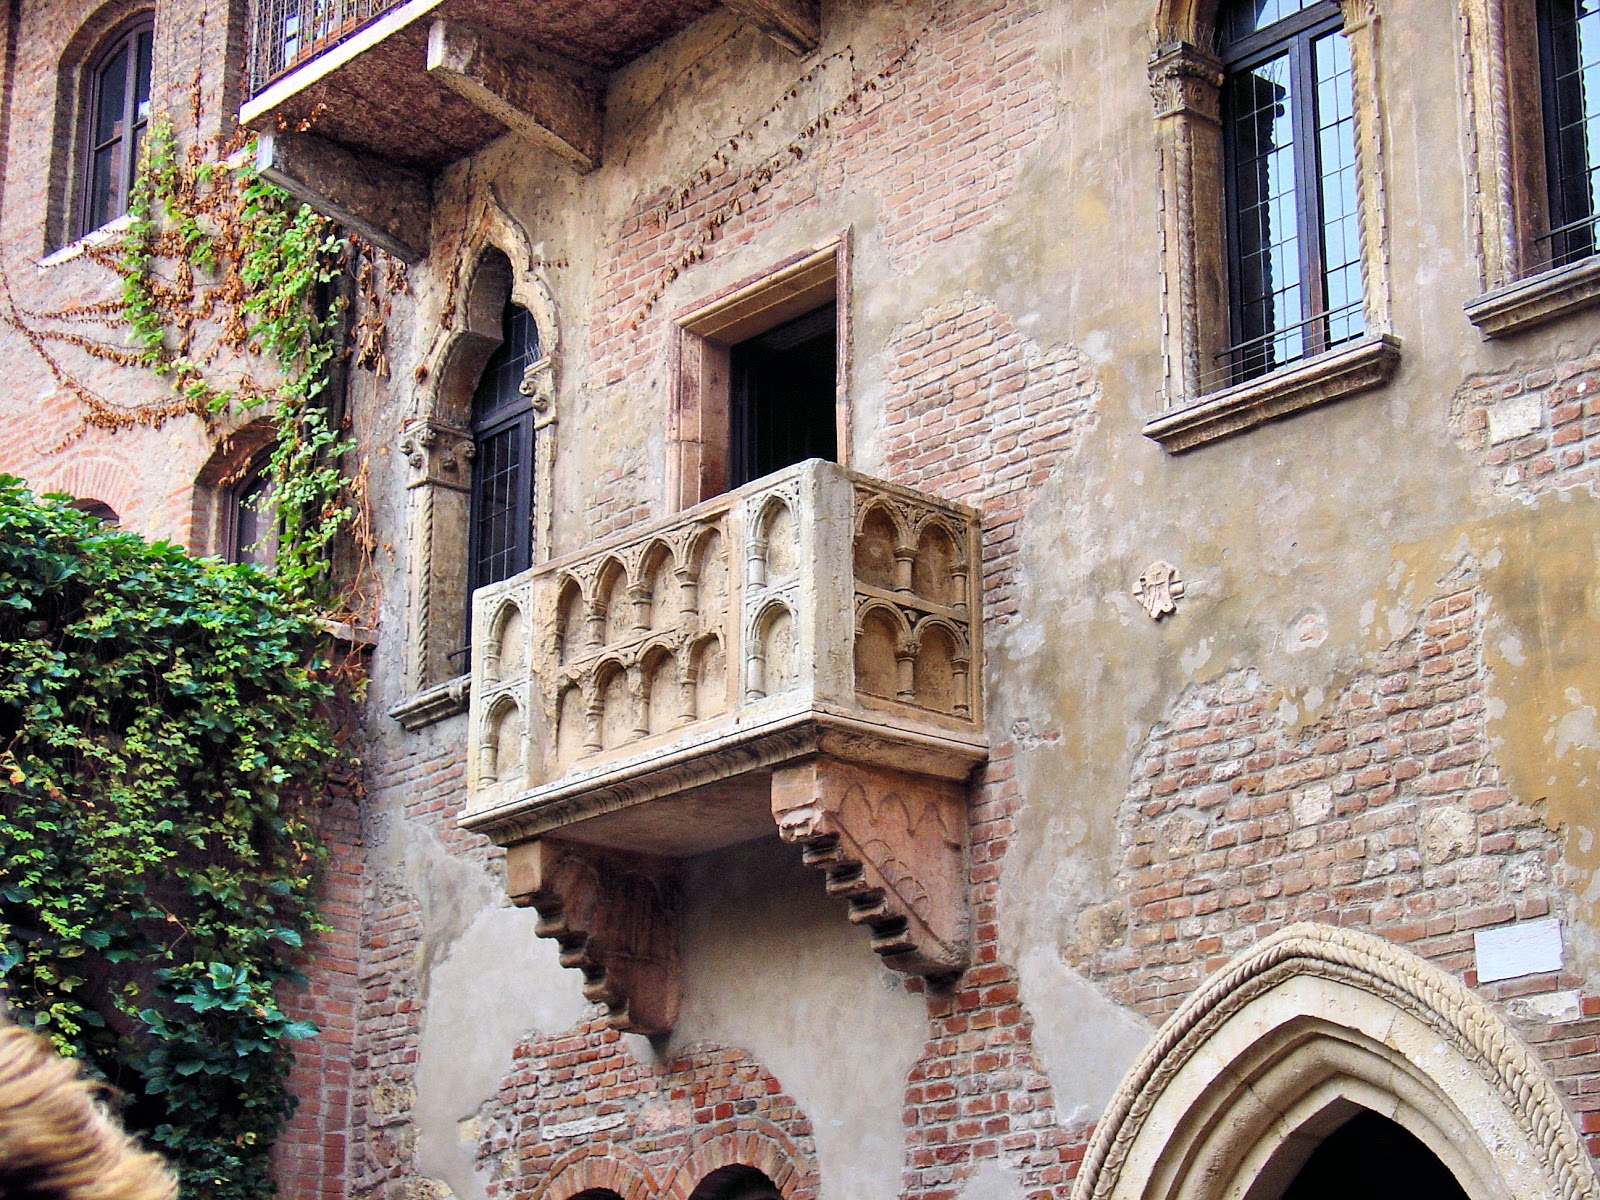 Hopeless romantics from around the world travel here to write letters to their beloved Juliet.